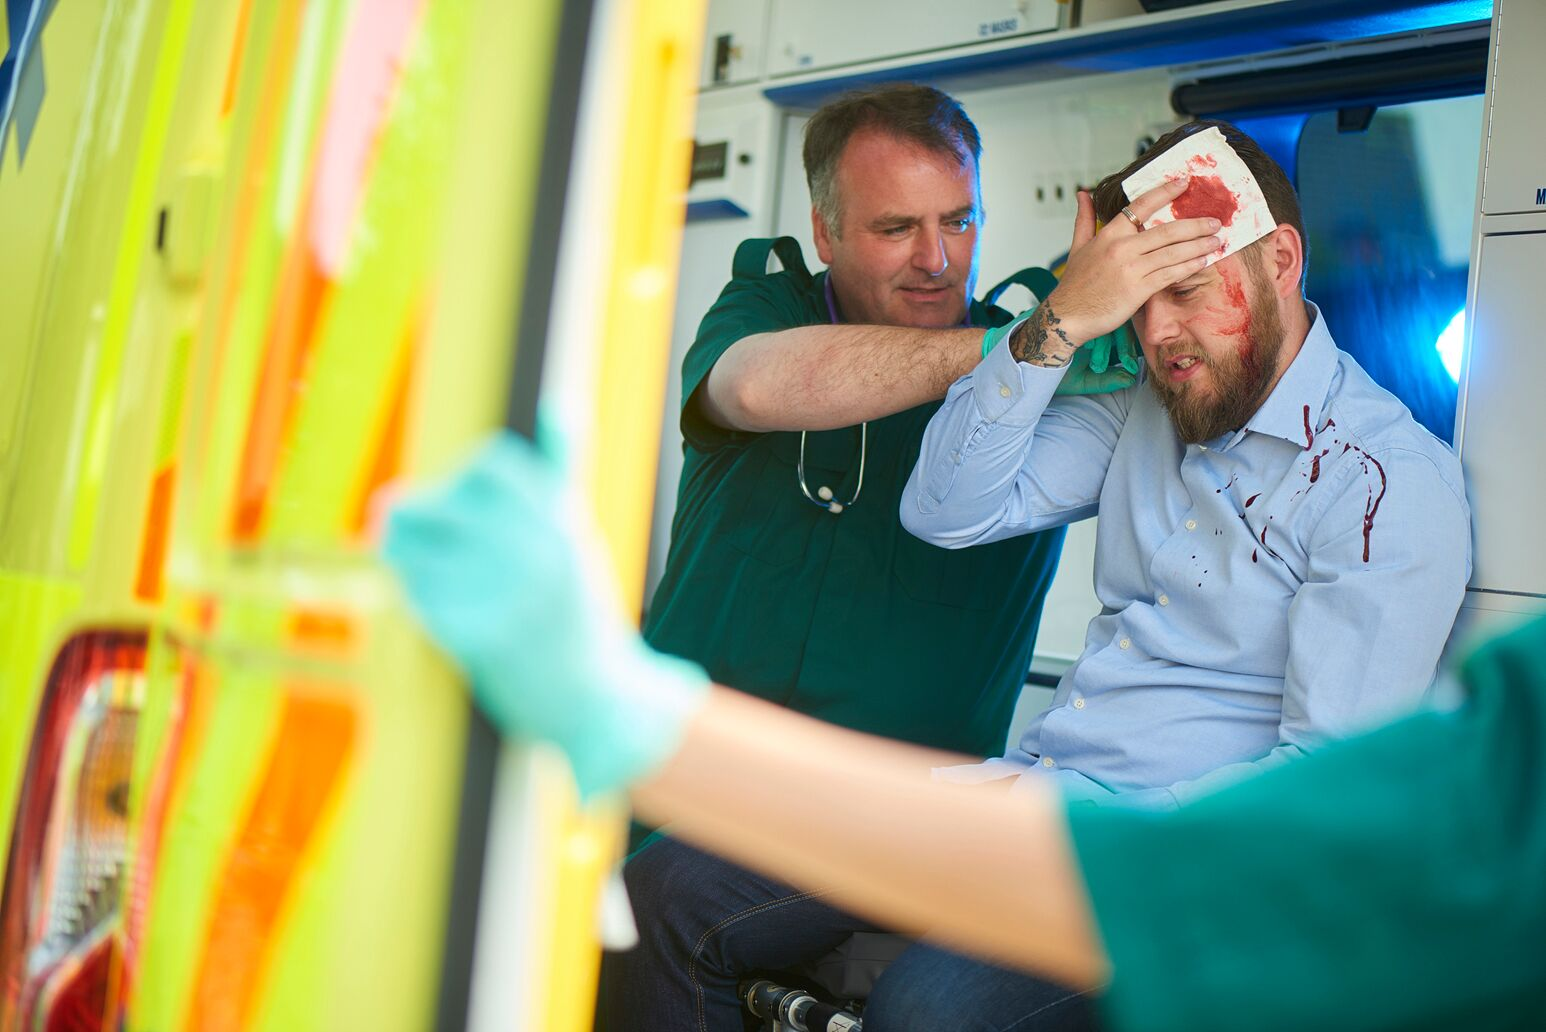 A man holds a bandage to his head after a traumatic incident